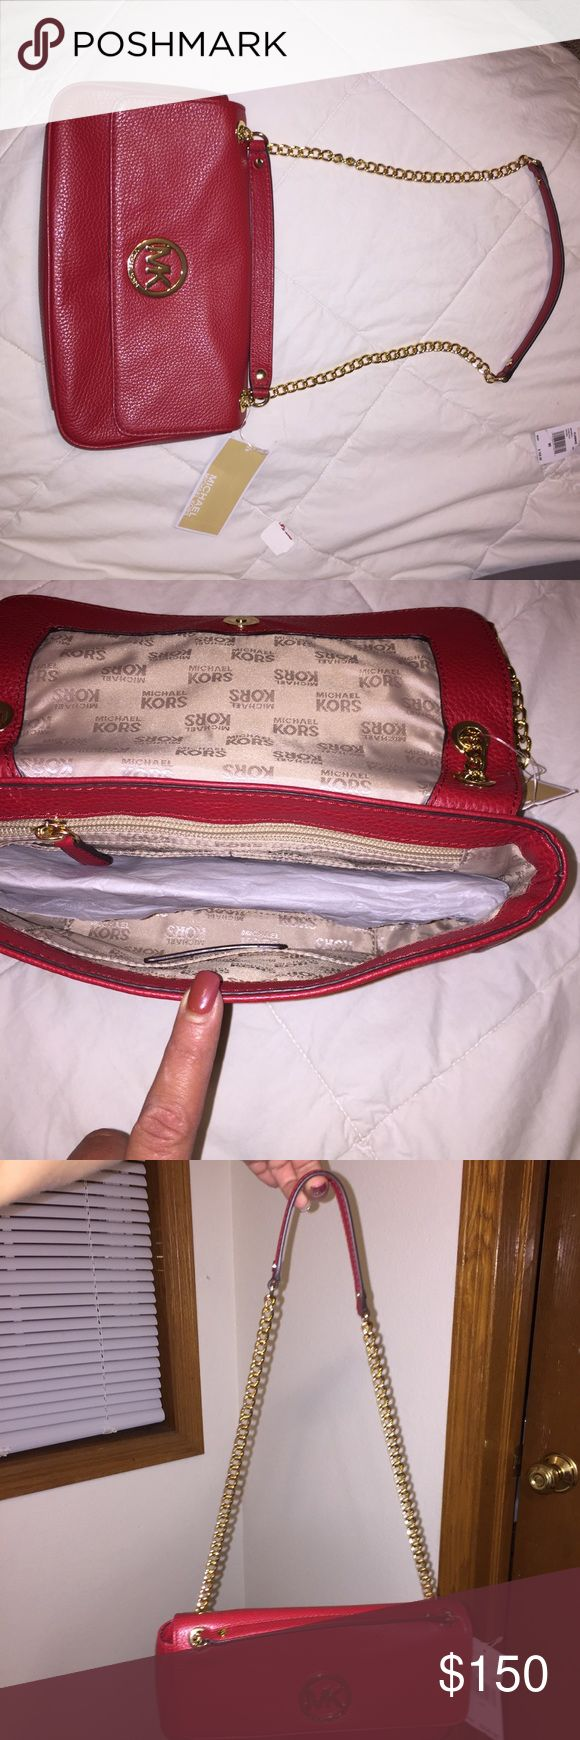 Michael Kors purse Red leather Michael Kors ladies small purse With gold chain Michael Kors Bags Shoulder Bags